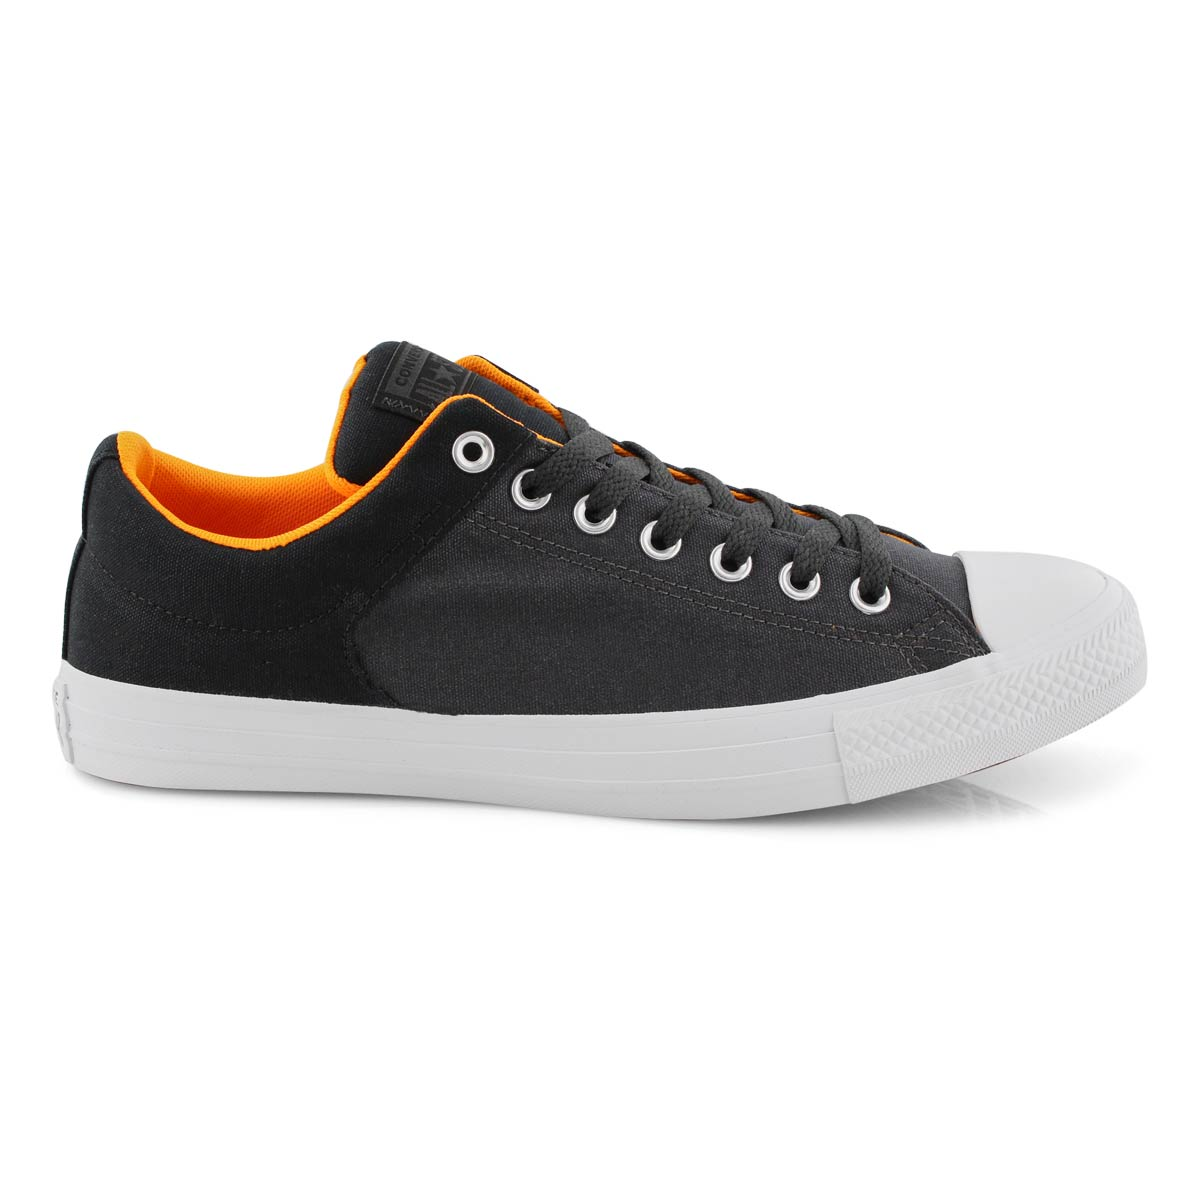 Mns CTAS High Street blk/orng snkr